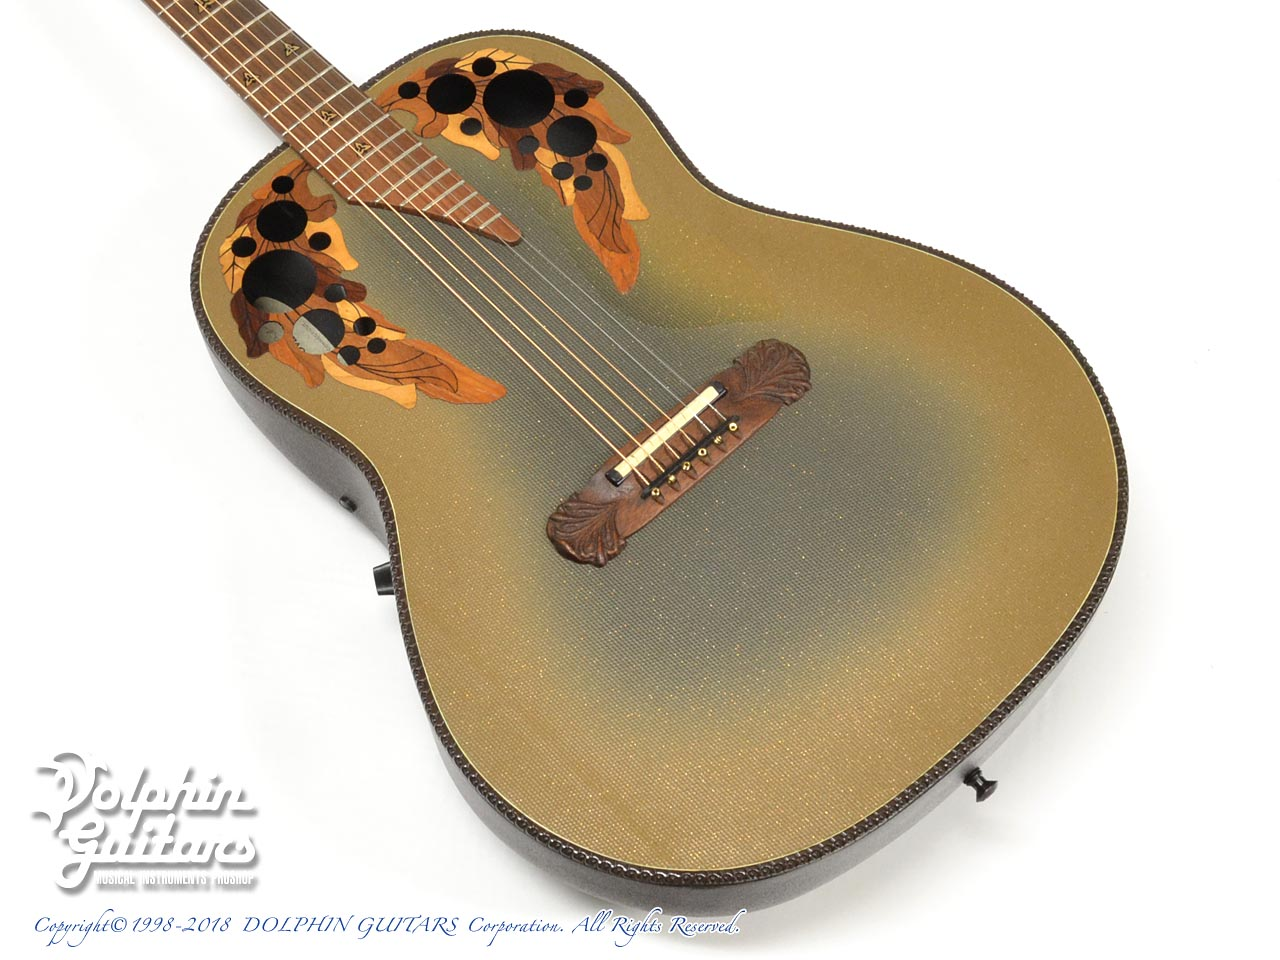 OVATION: Super Adamas 1687-9 (1)